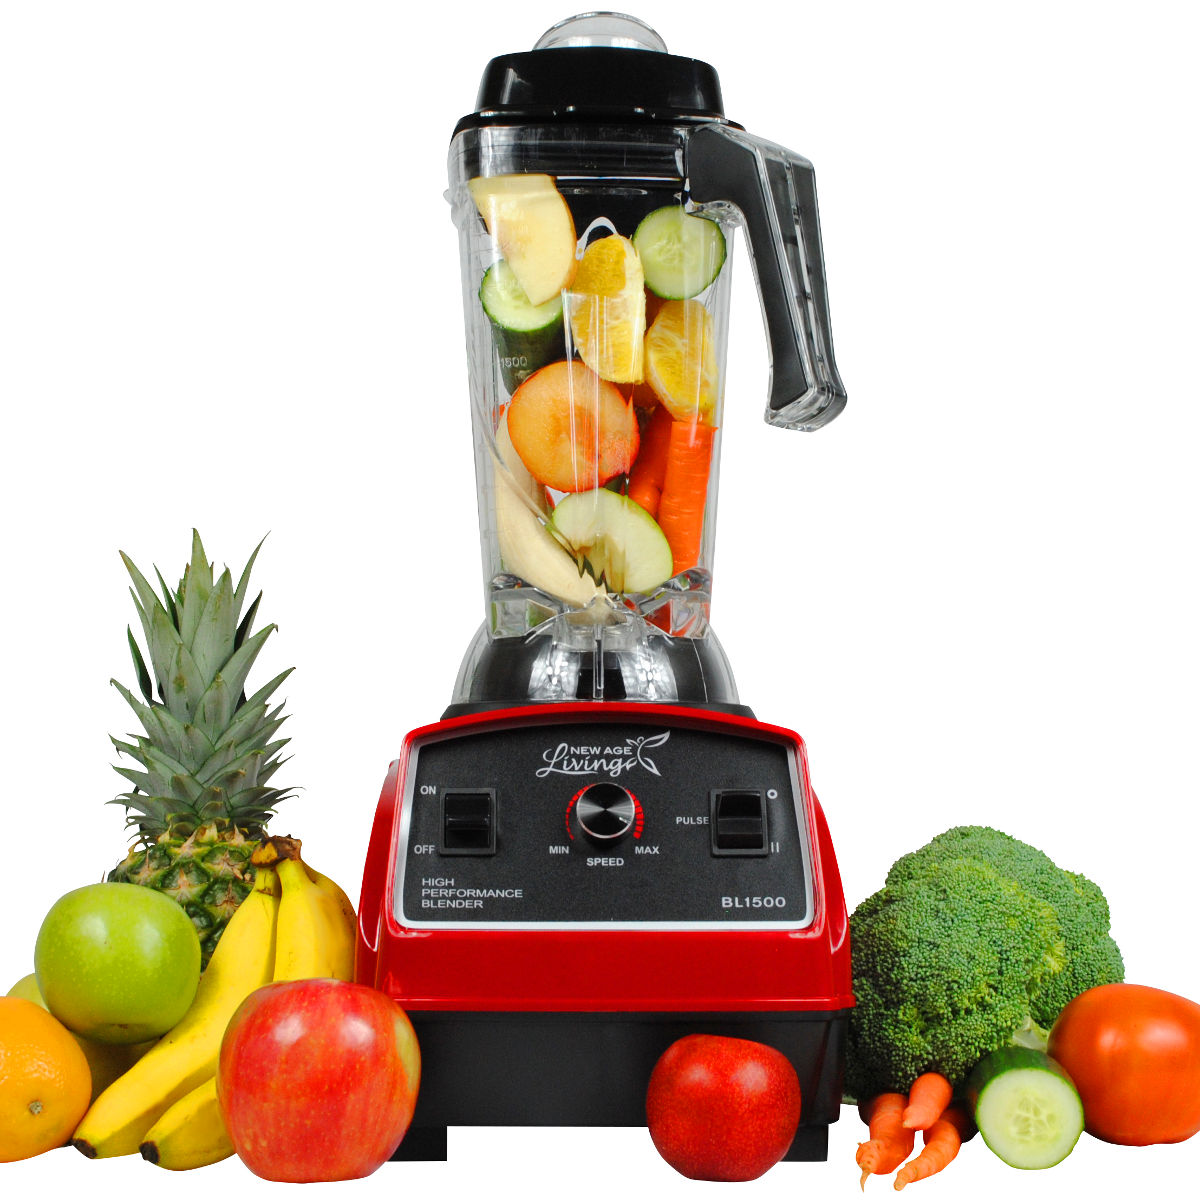 FRUIT BLENDER - RECOMMENDED